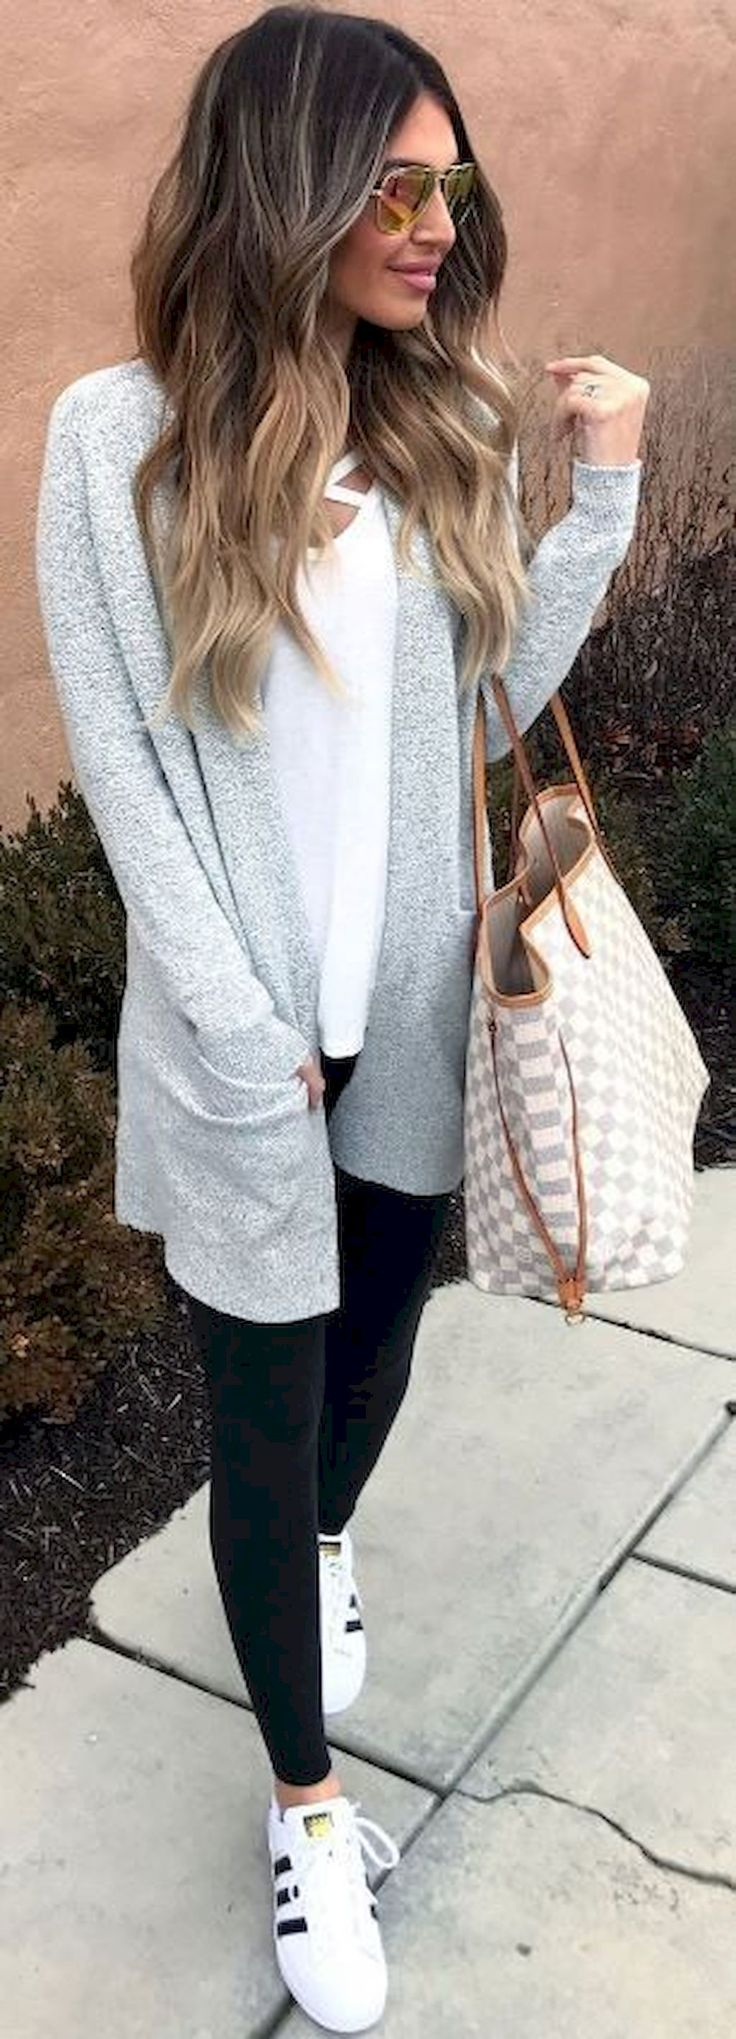 Gorgeous 85+ Comfy Airplane Outfits Ideas for Women https://bitecloth.com/2017/12/31/85-comfy-airplane-outfits-ideas-women/